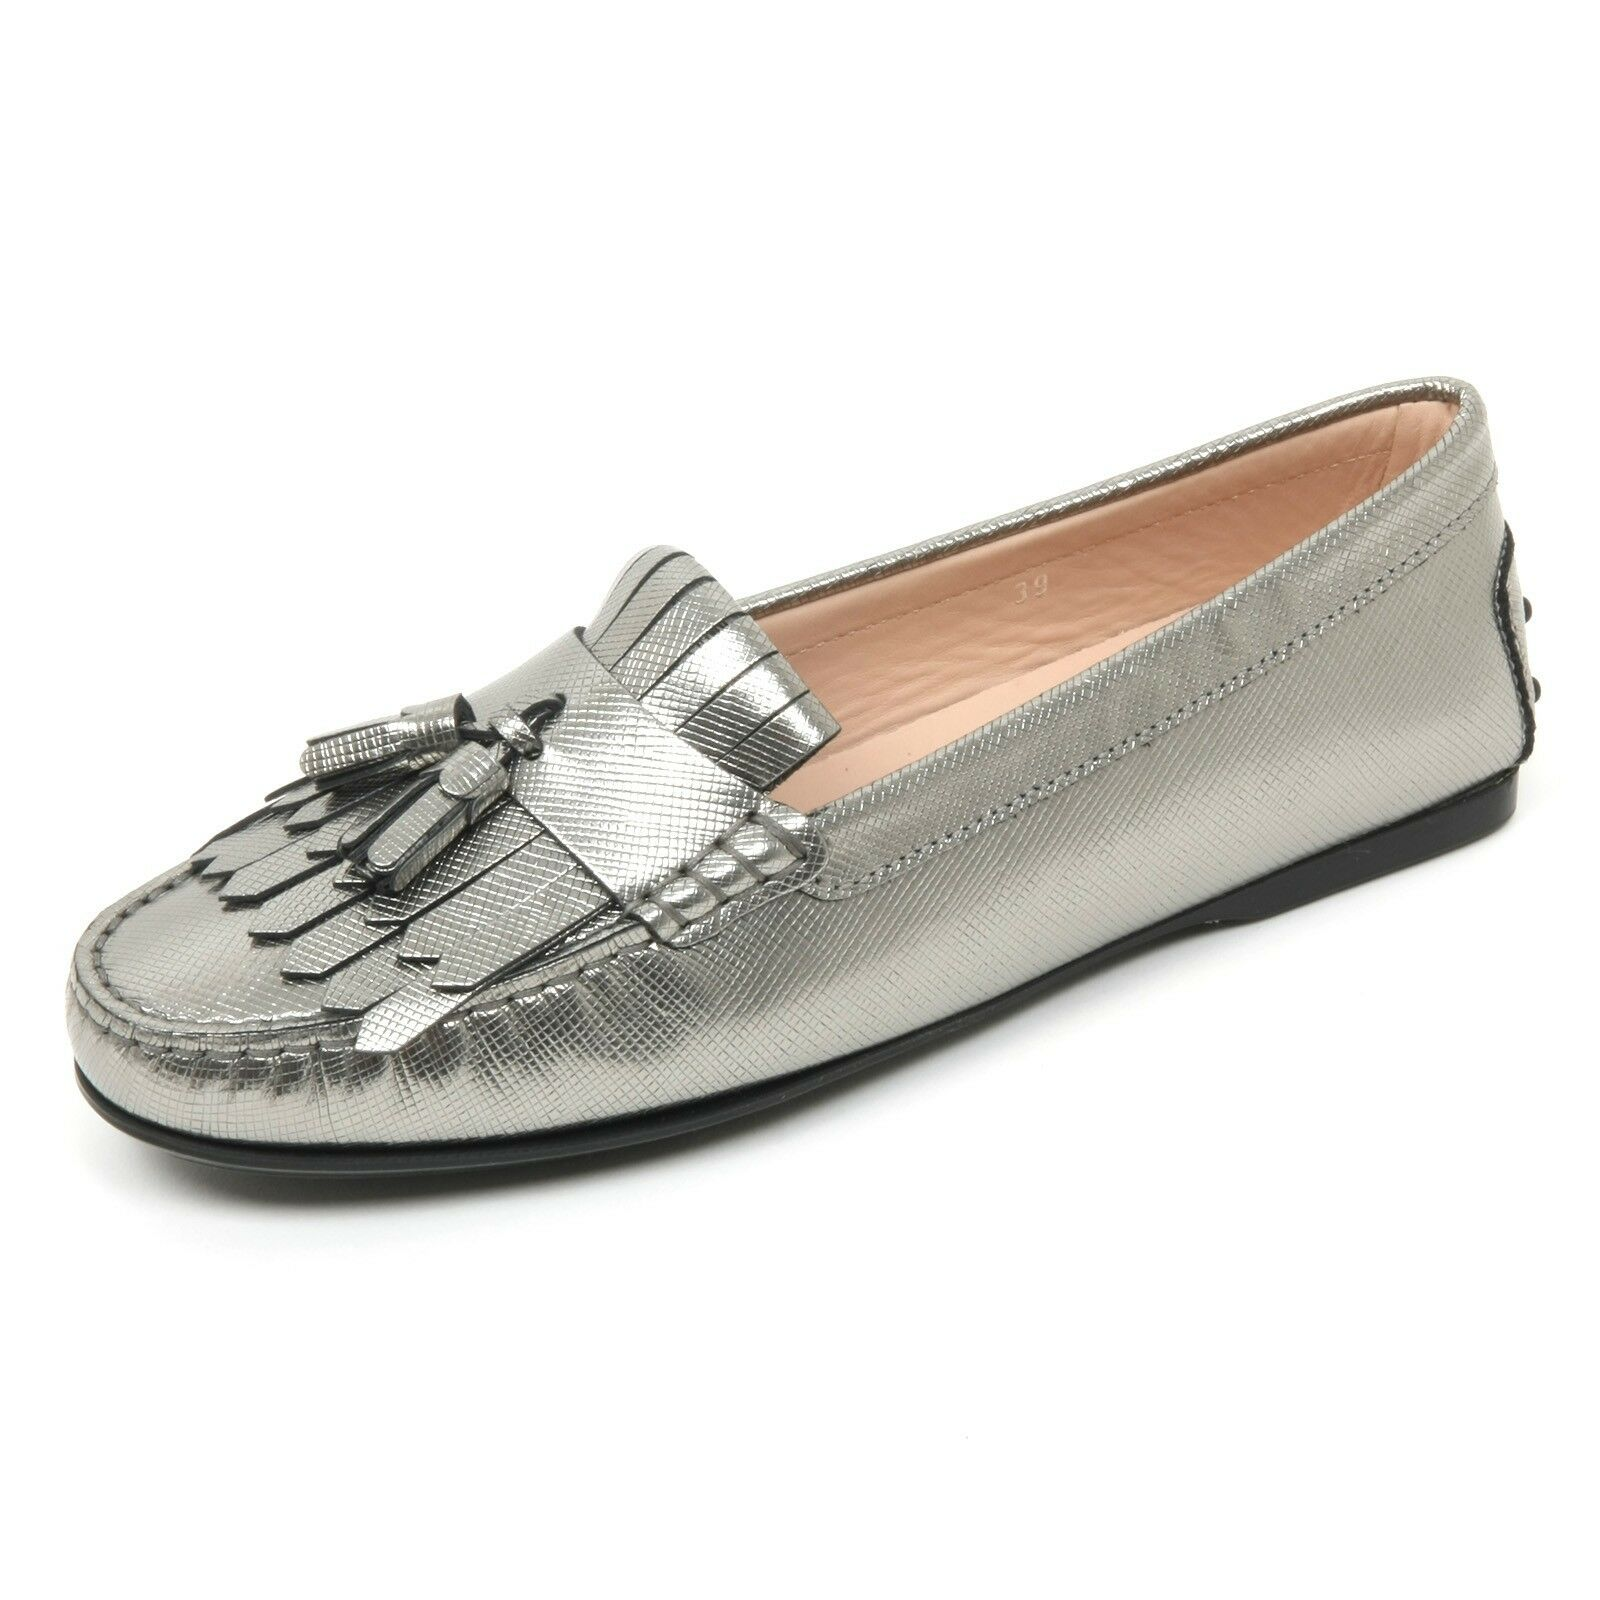 B9626 mocassino donna TOD'S scarpa frangia nappine grigio loafer shoe woman